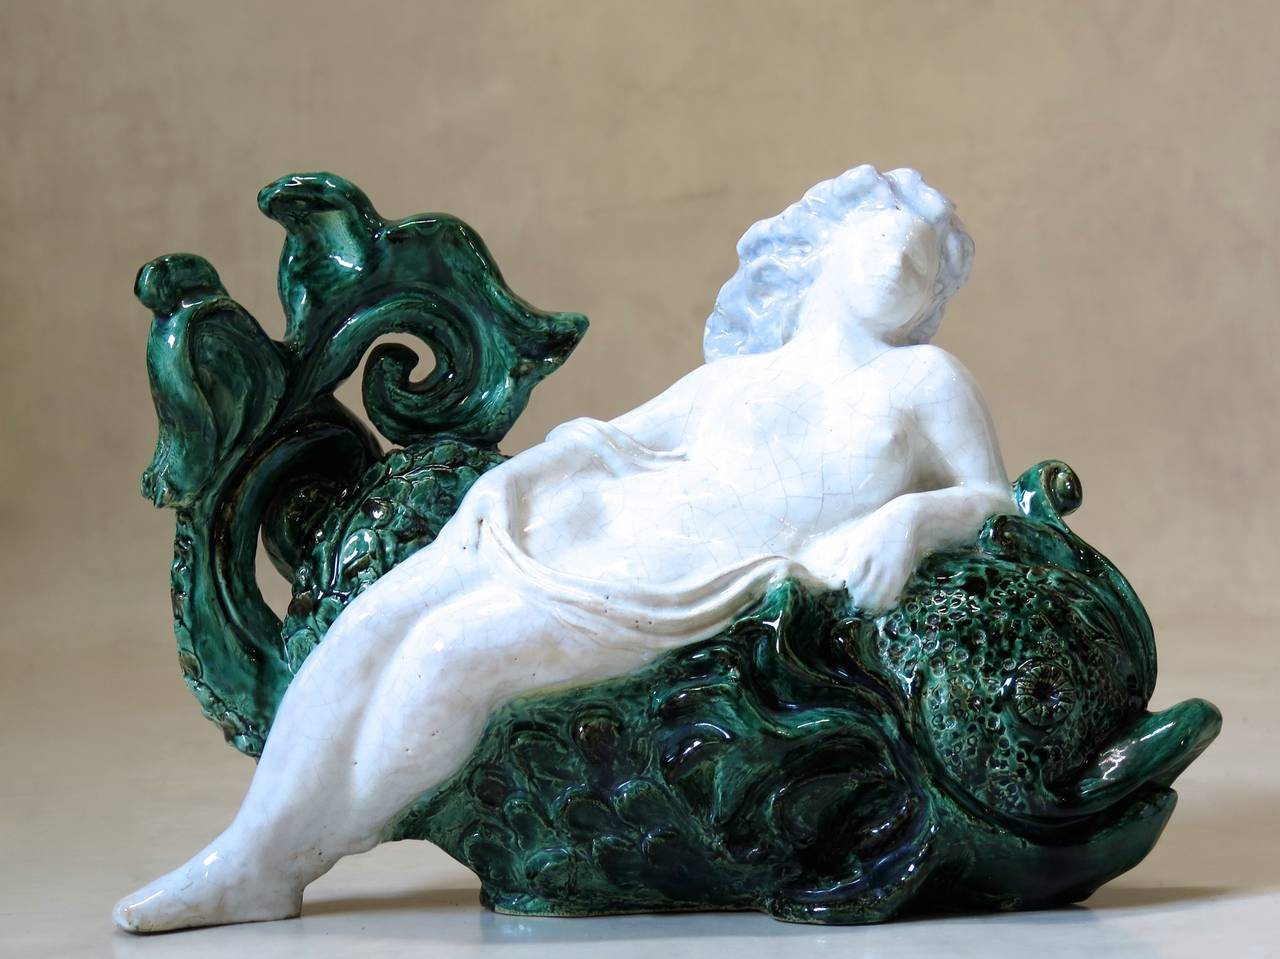 Lovely glazed ceramic representation of a nude woman reclining on a dolphin's back. Craquelure finish on the woman. Signed and dated